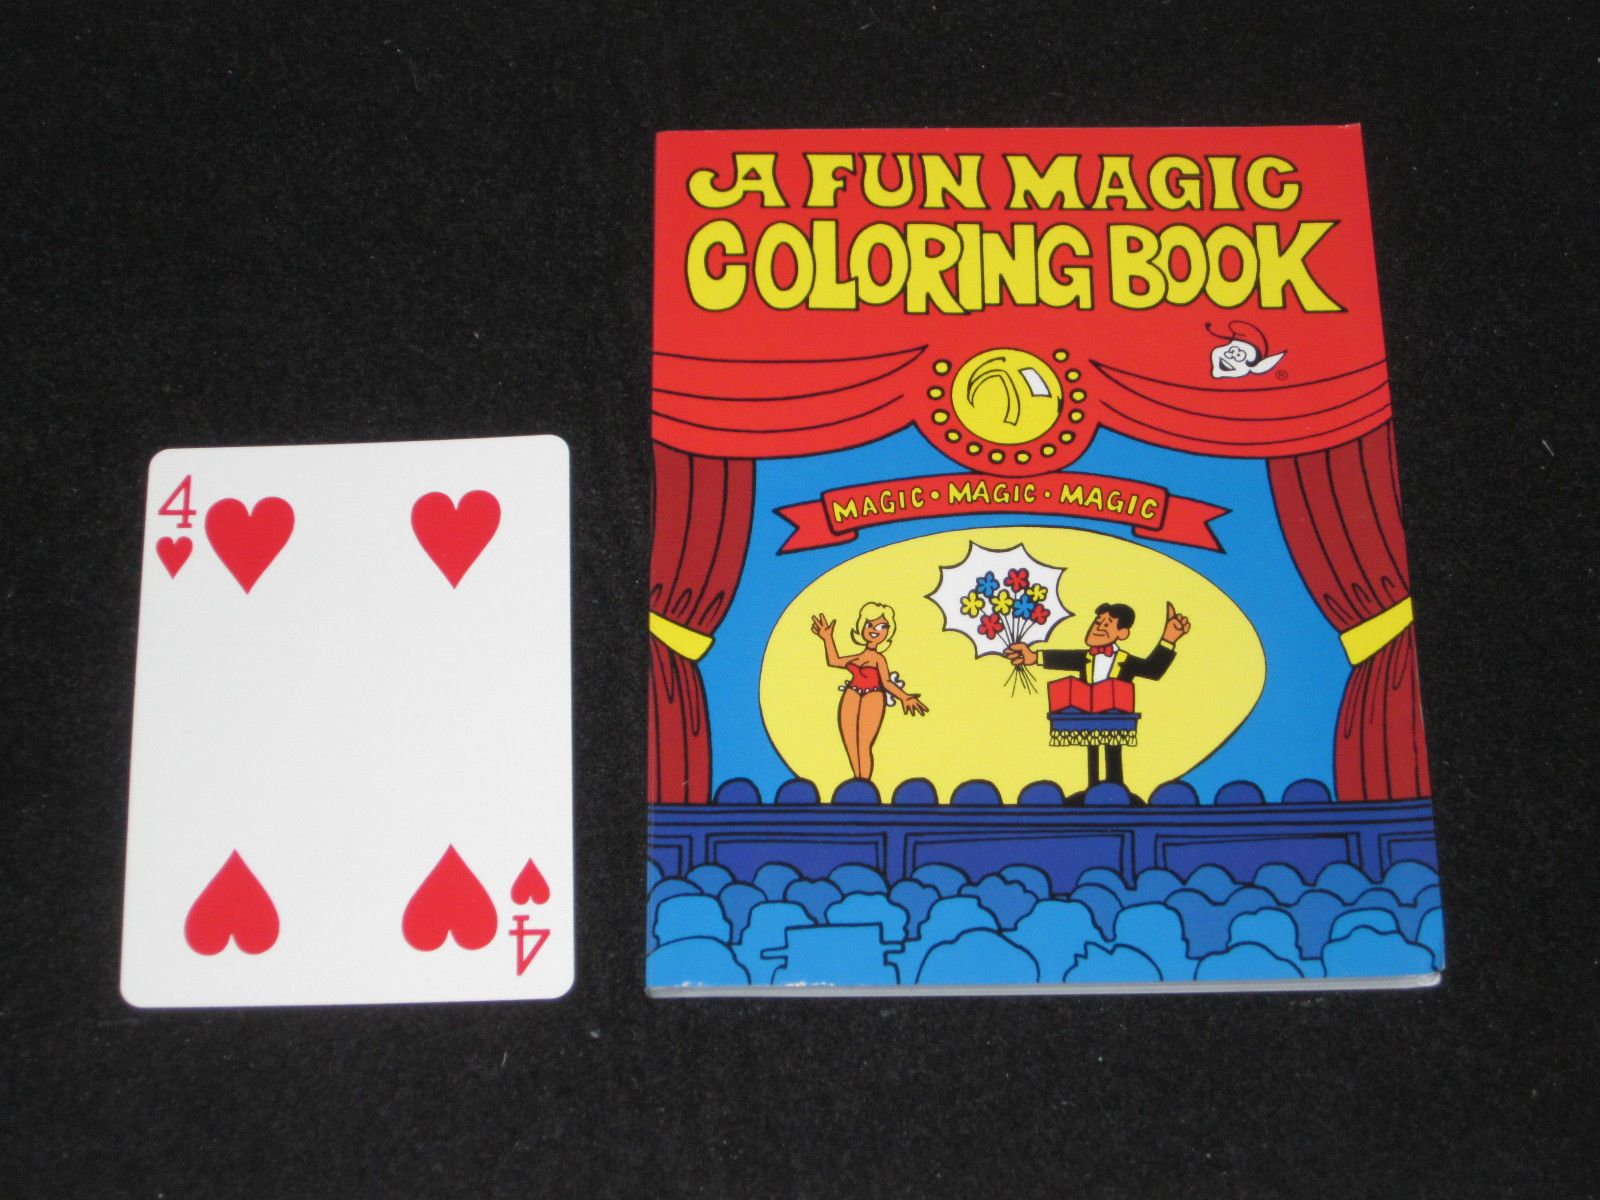 7 5 Pocket Size Famous Coloring Book Magic Trick Close Up Pocket Walk Around Ebay Collectibles Coloring Books Color Books